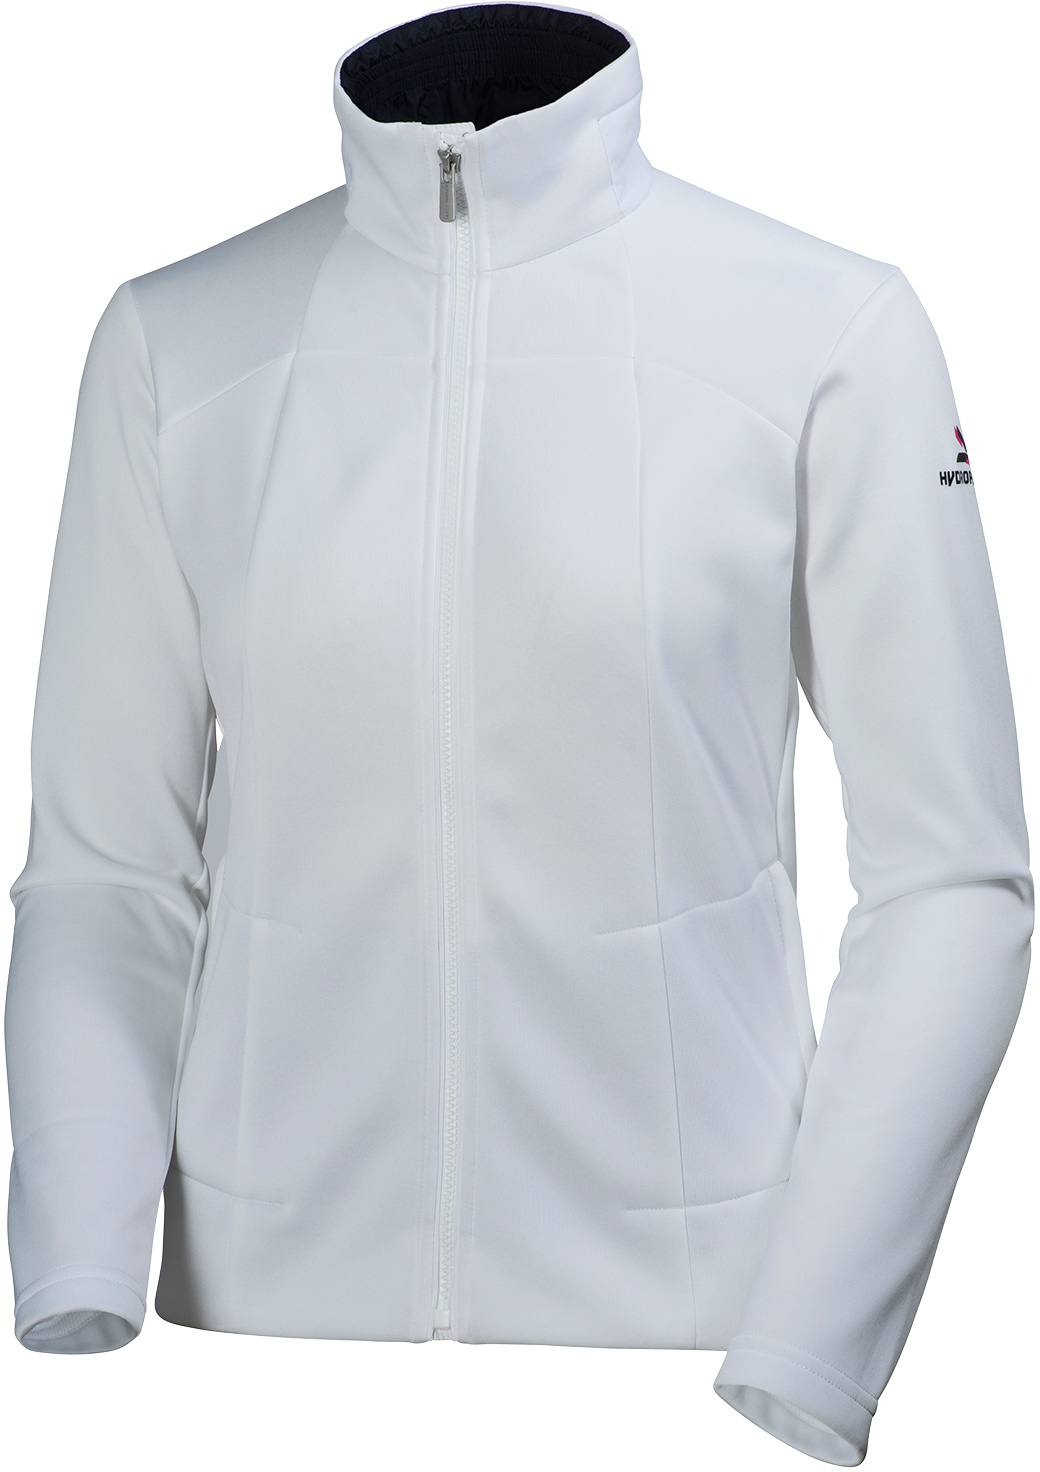 Helly Hansen Women S Hp Fleece Jacket White. Full image ... 95ddd74740